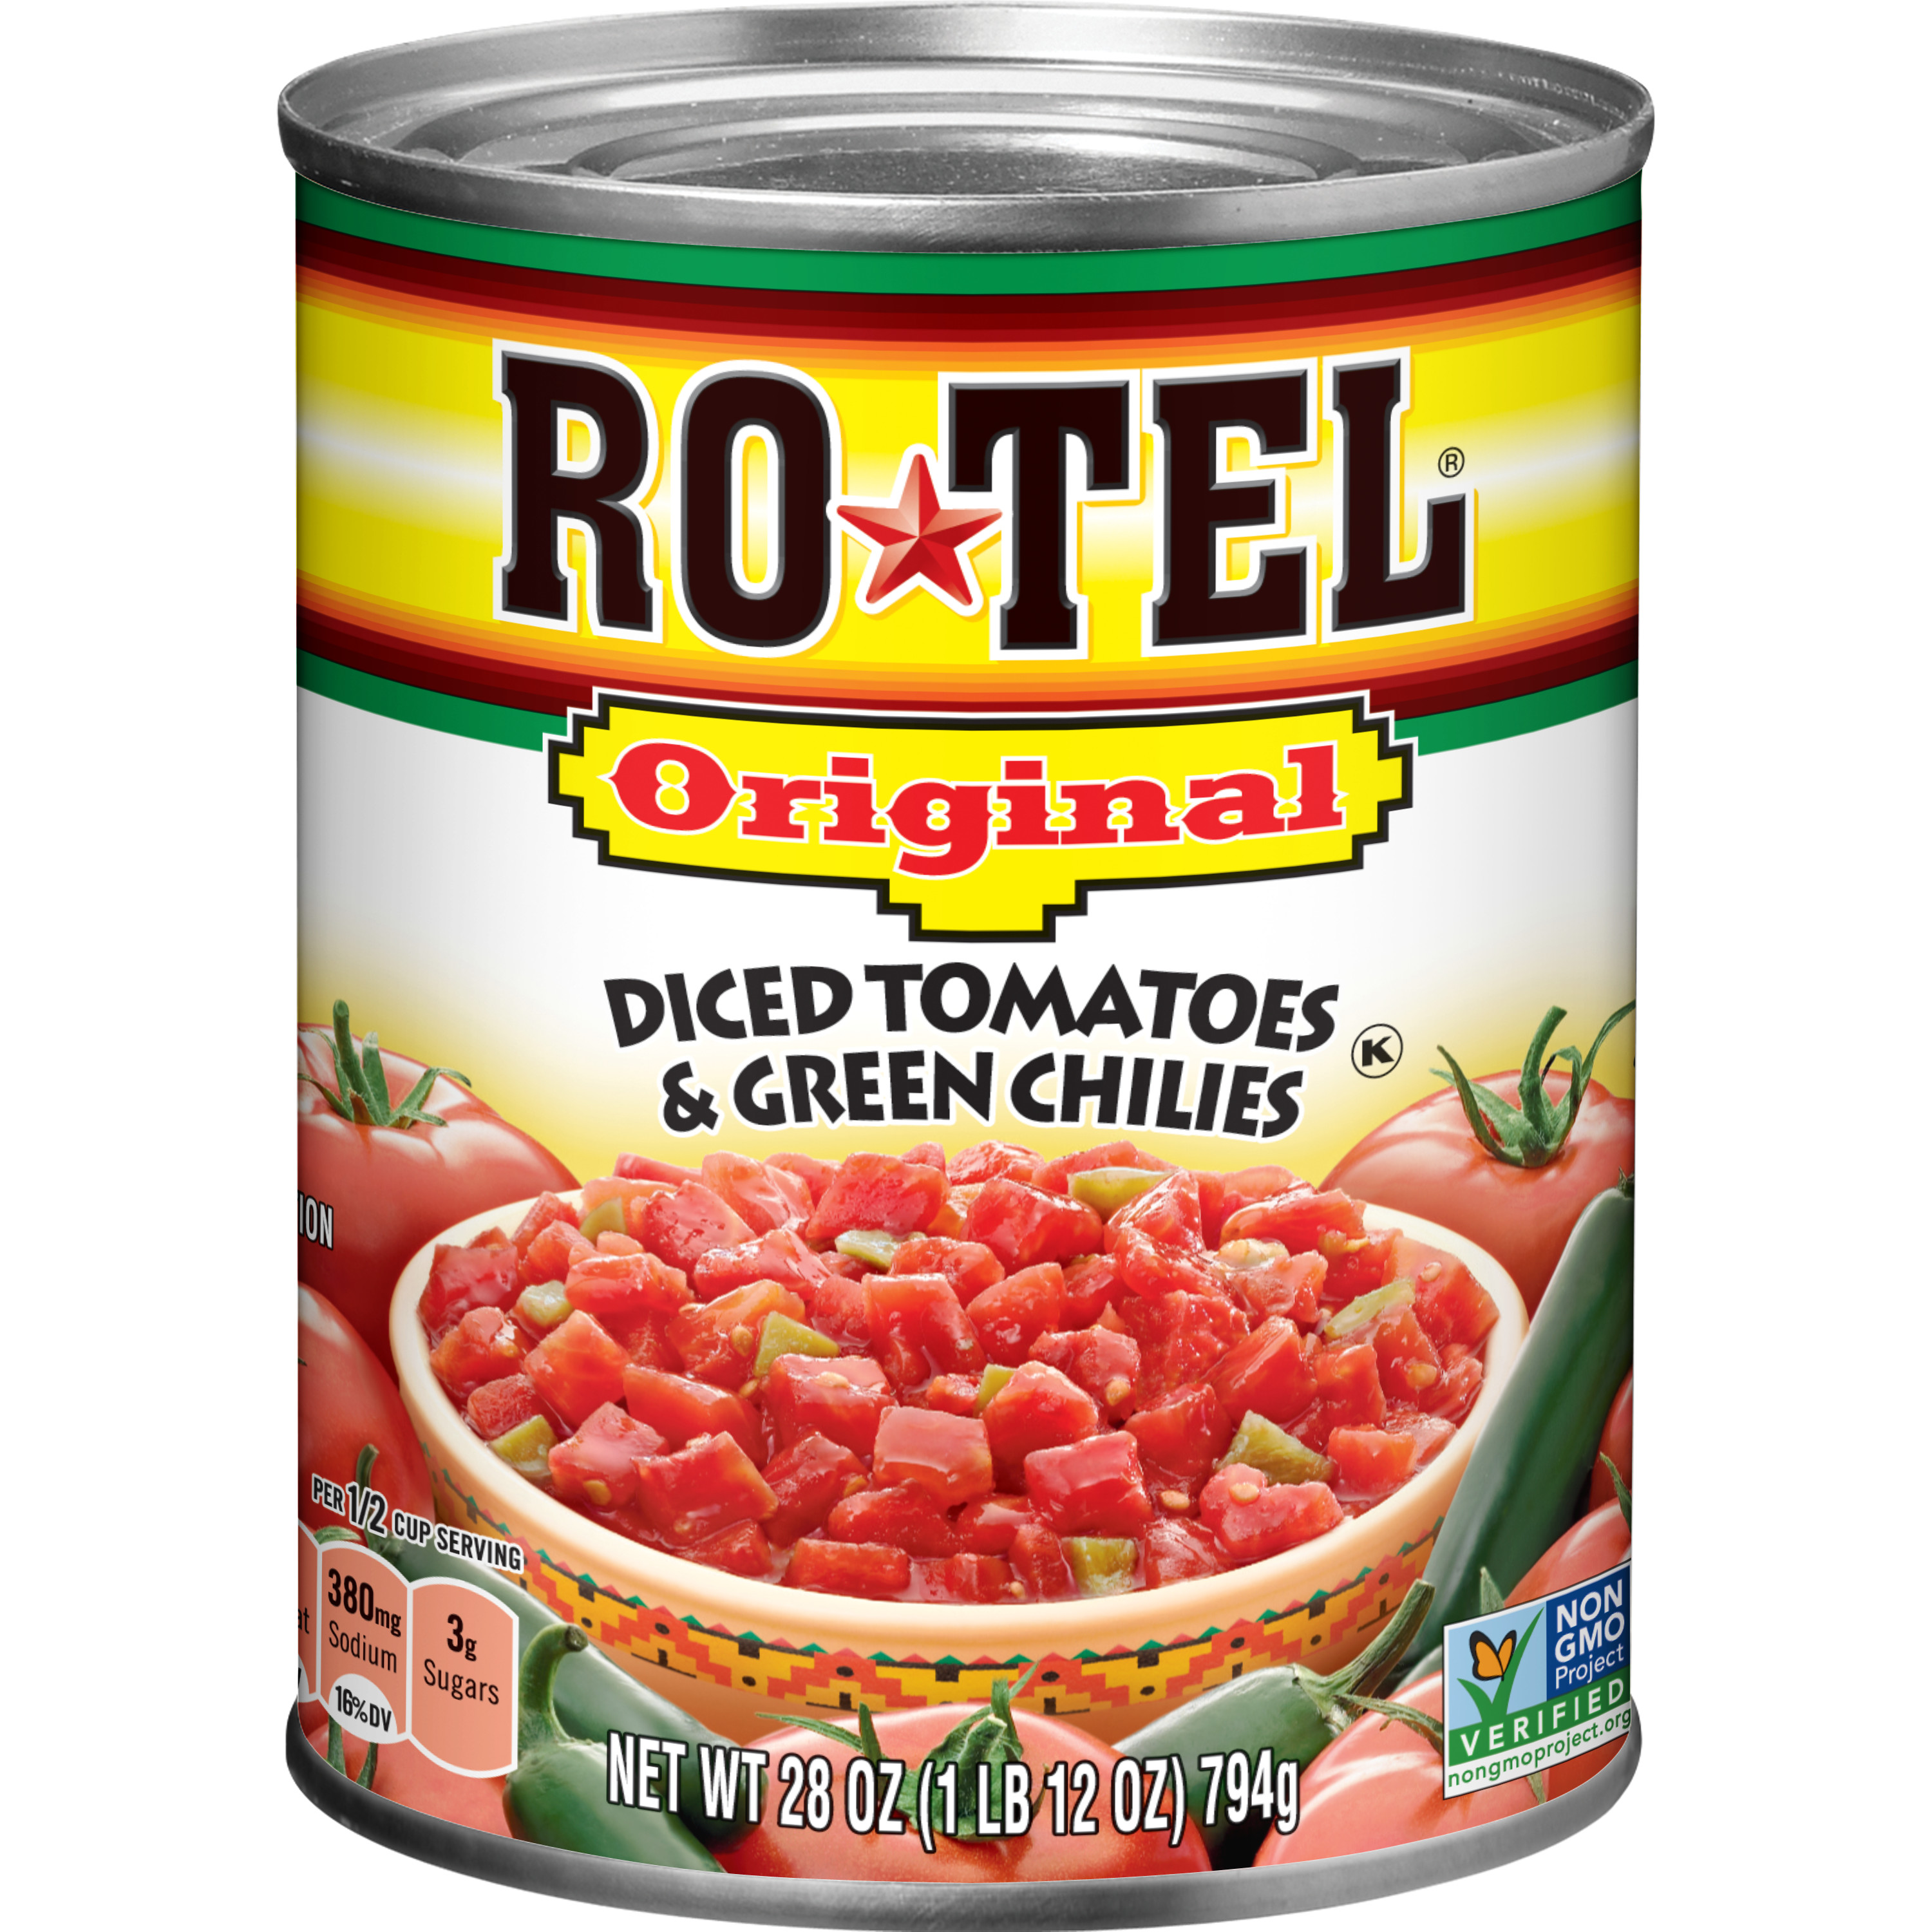 RO*TEL Original Diced Tomatoes and Green Chilies, 28 Ounce